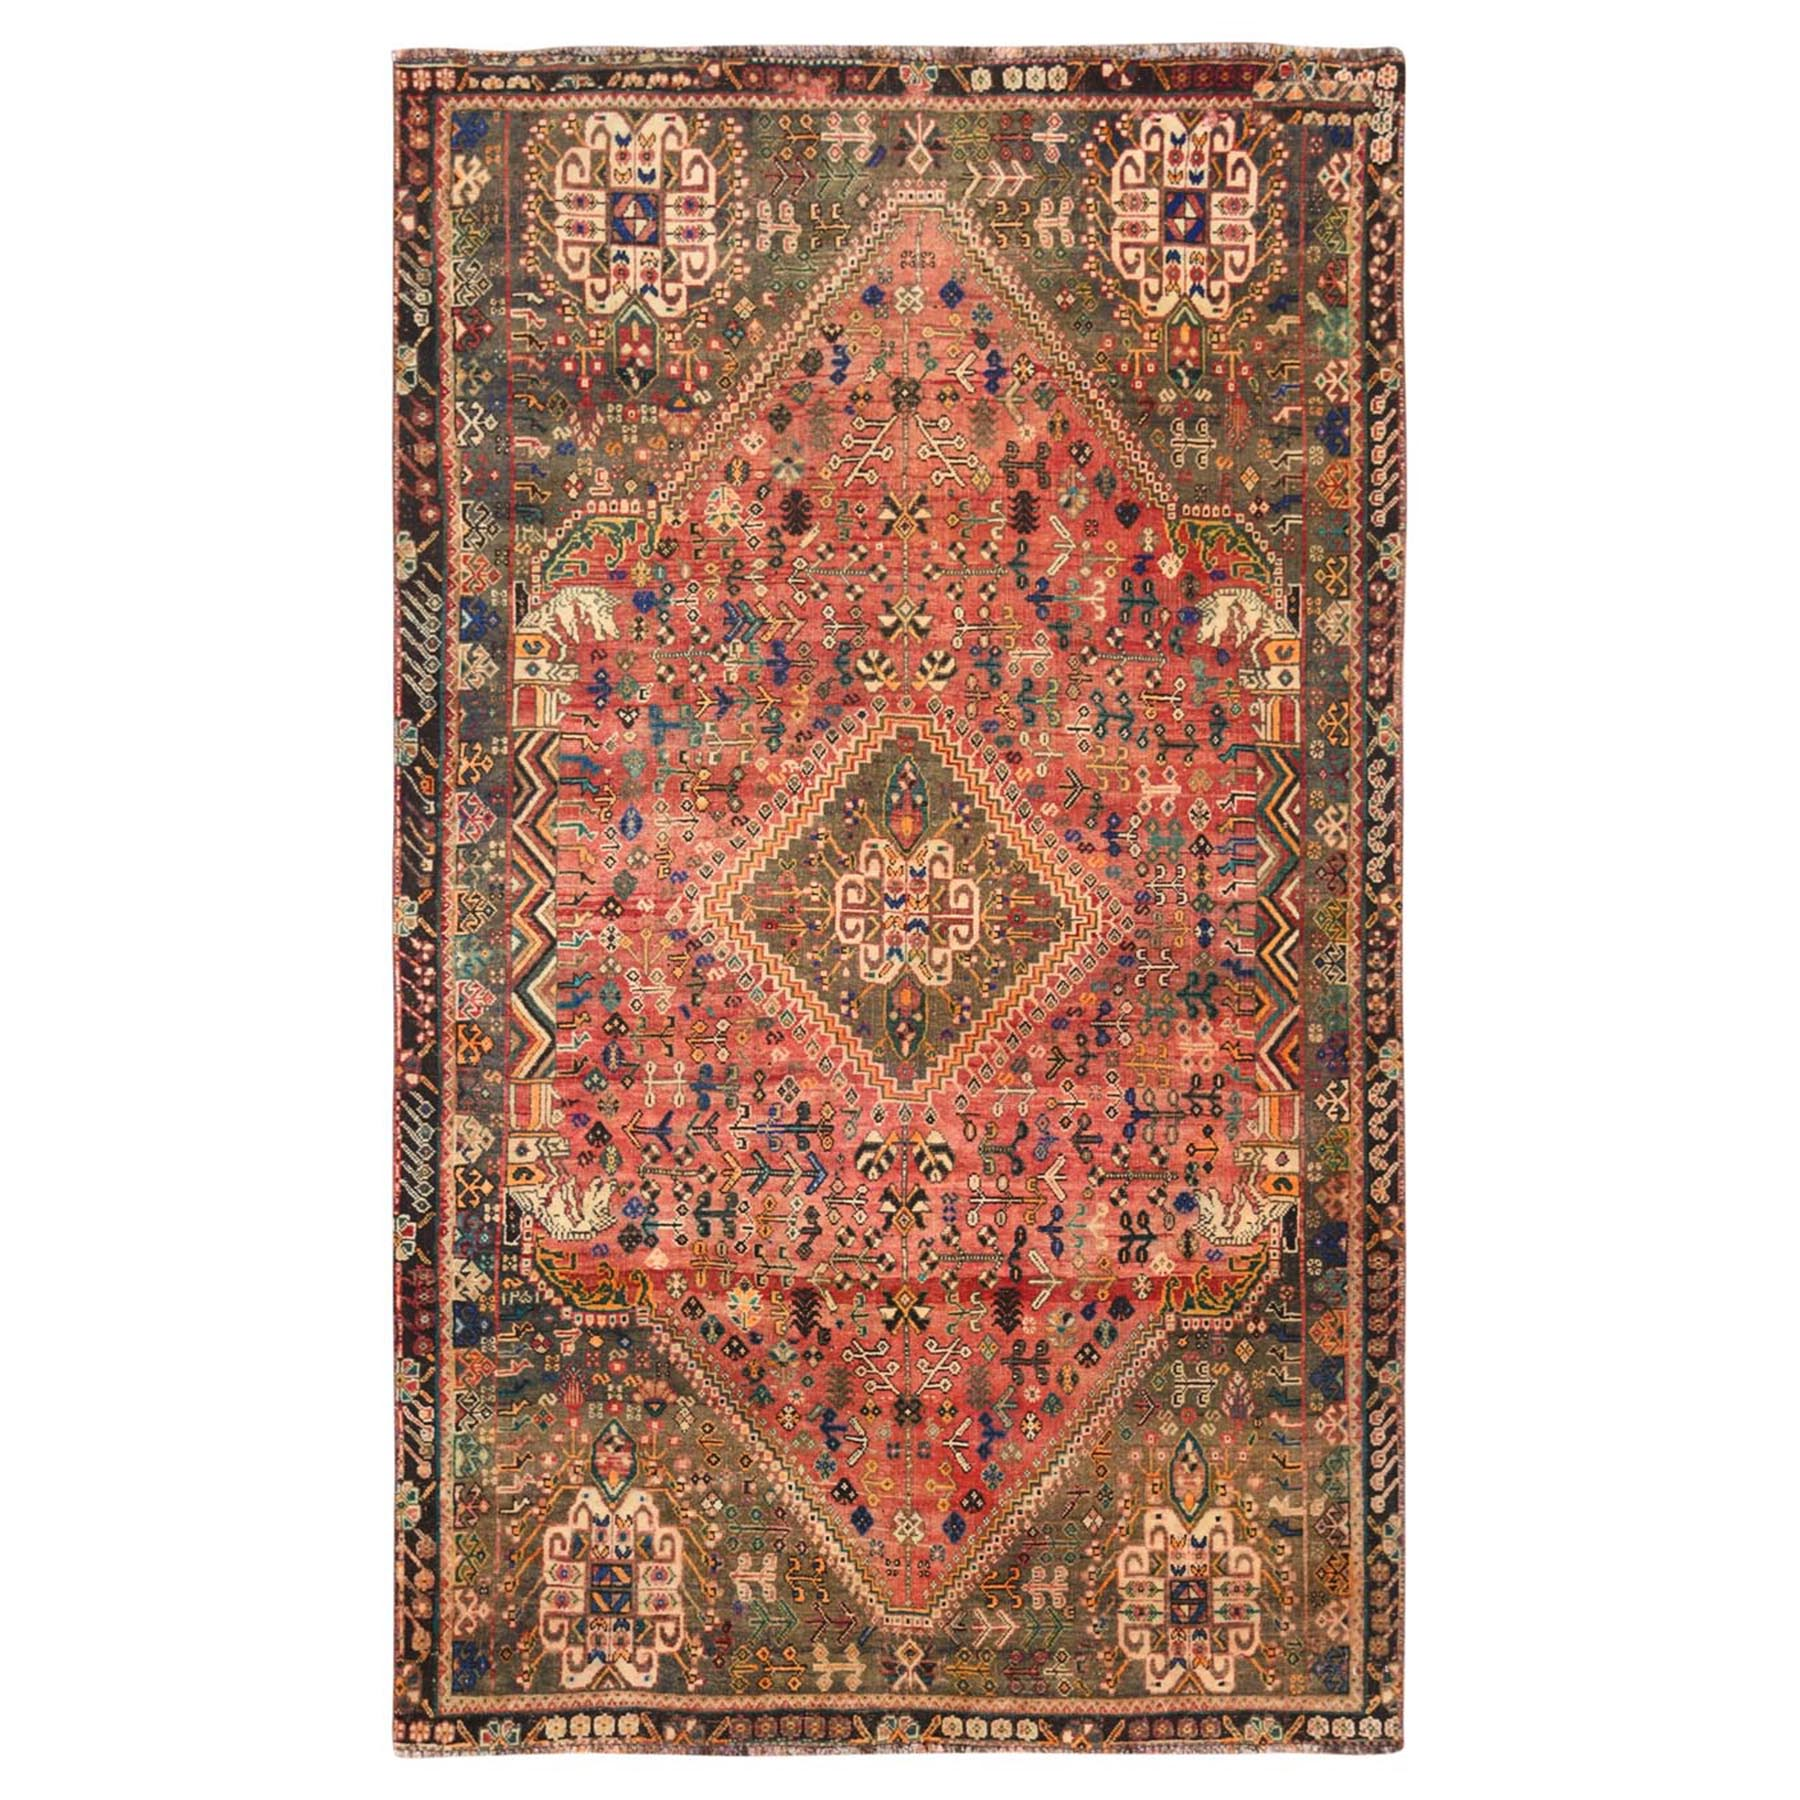 "4'10""x7'8"" Pure Wool Orange Persian Shiraz Cropped Thin Vintage Bohemian Clean Hand Woven Oriental Rug"